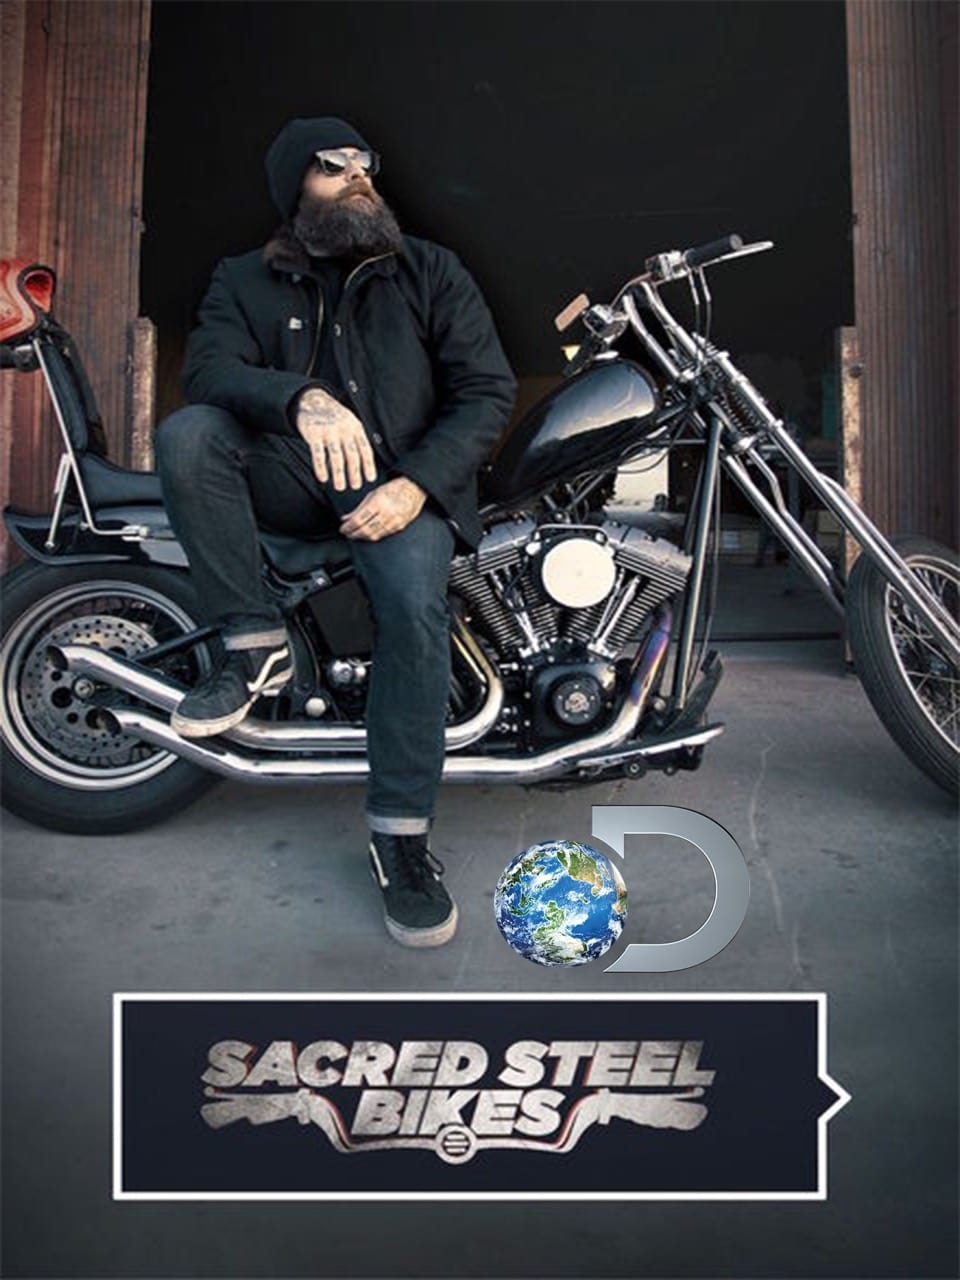 Sacred Steel Bikes TV Shows About Motorcycle